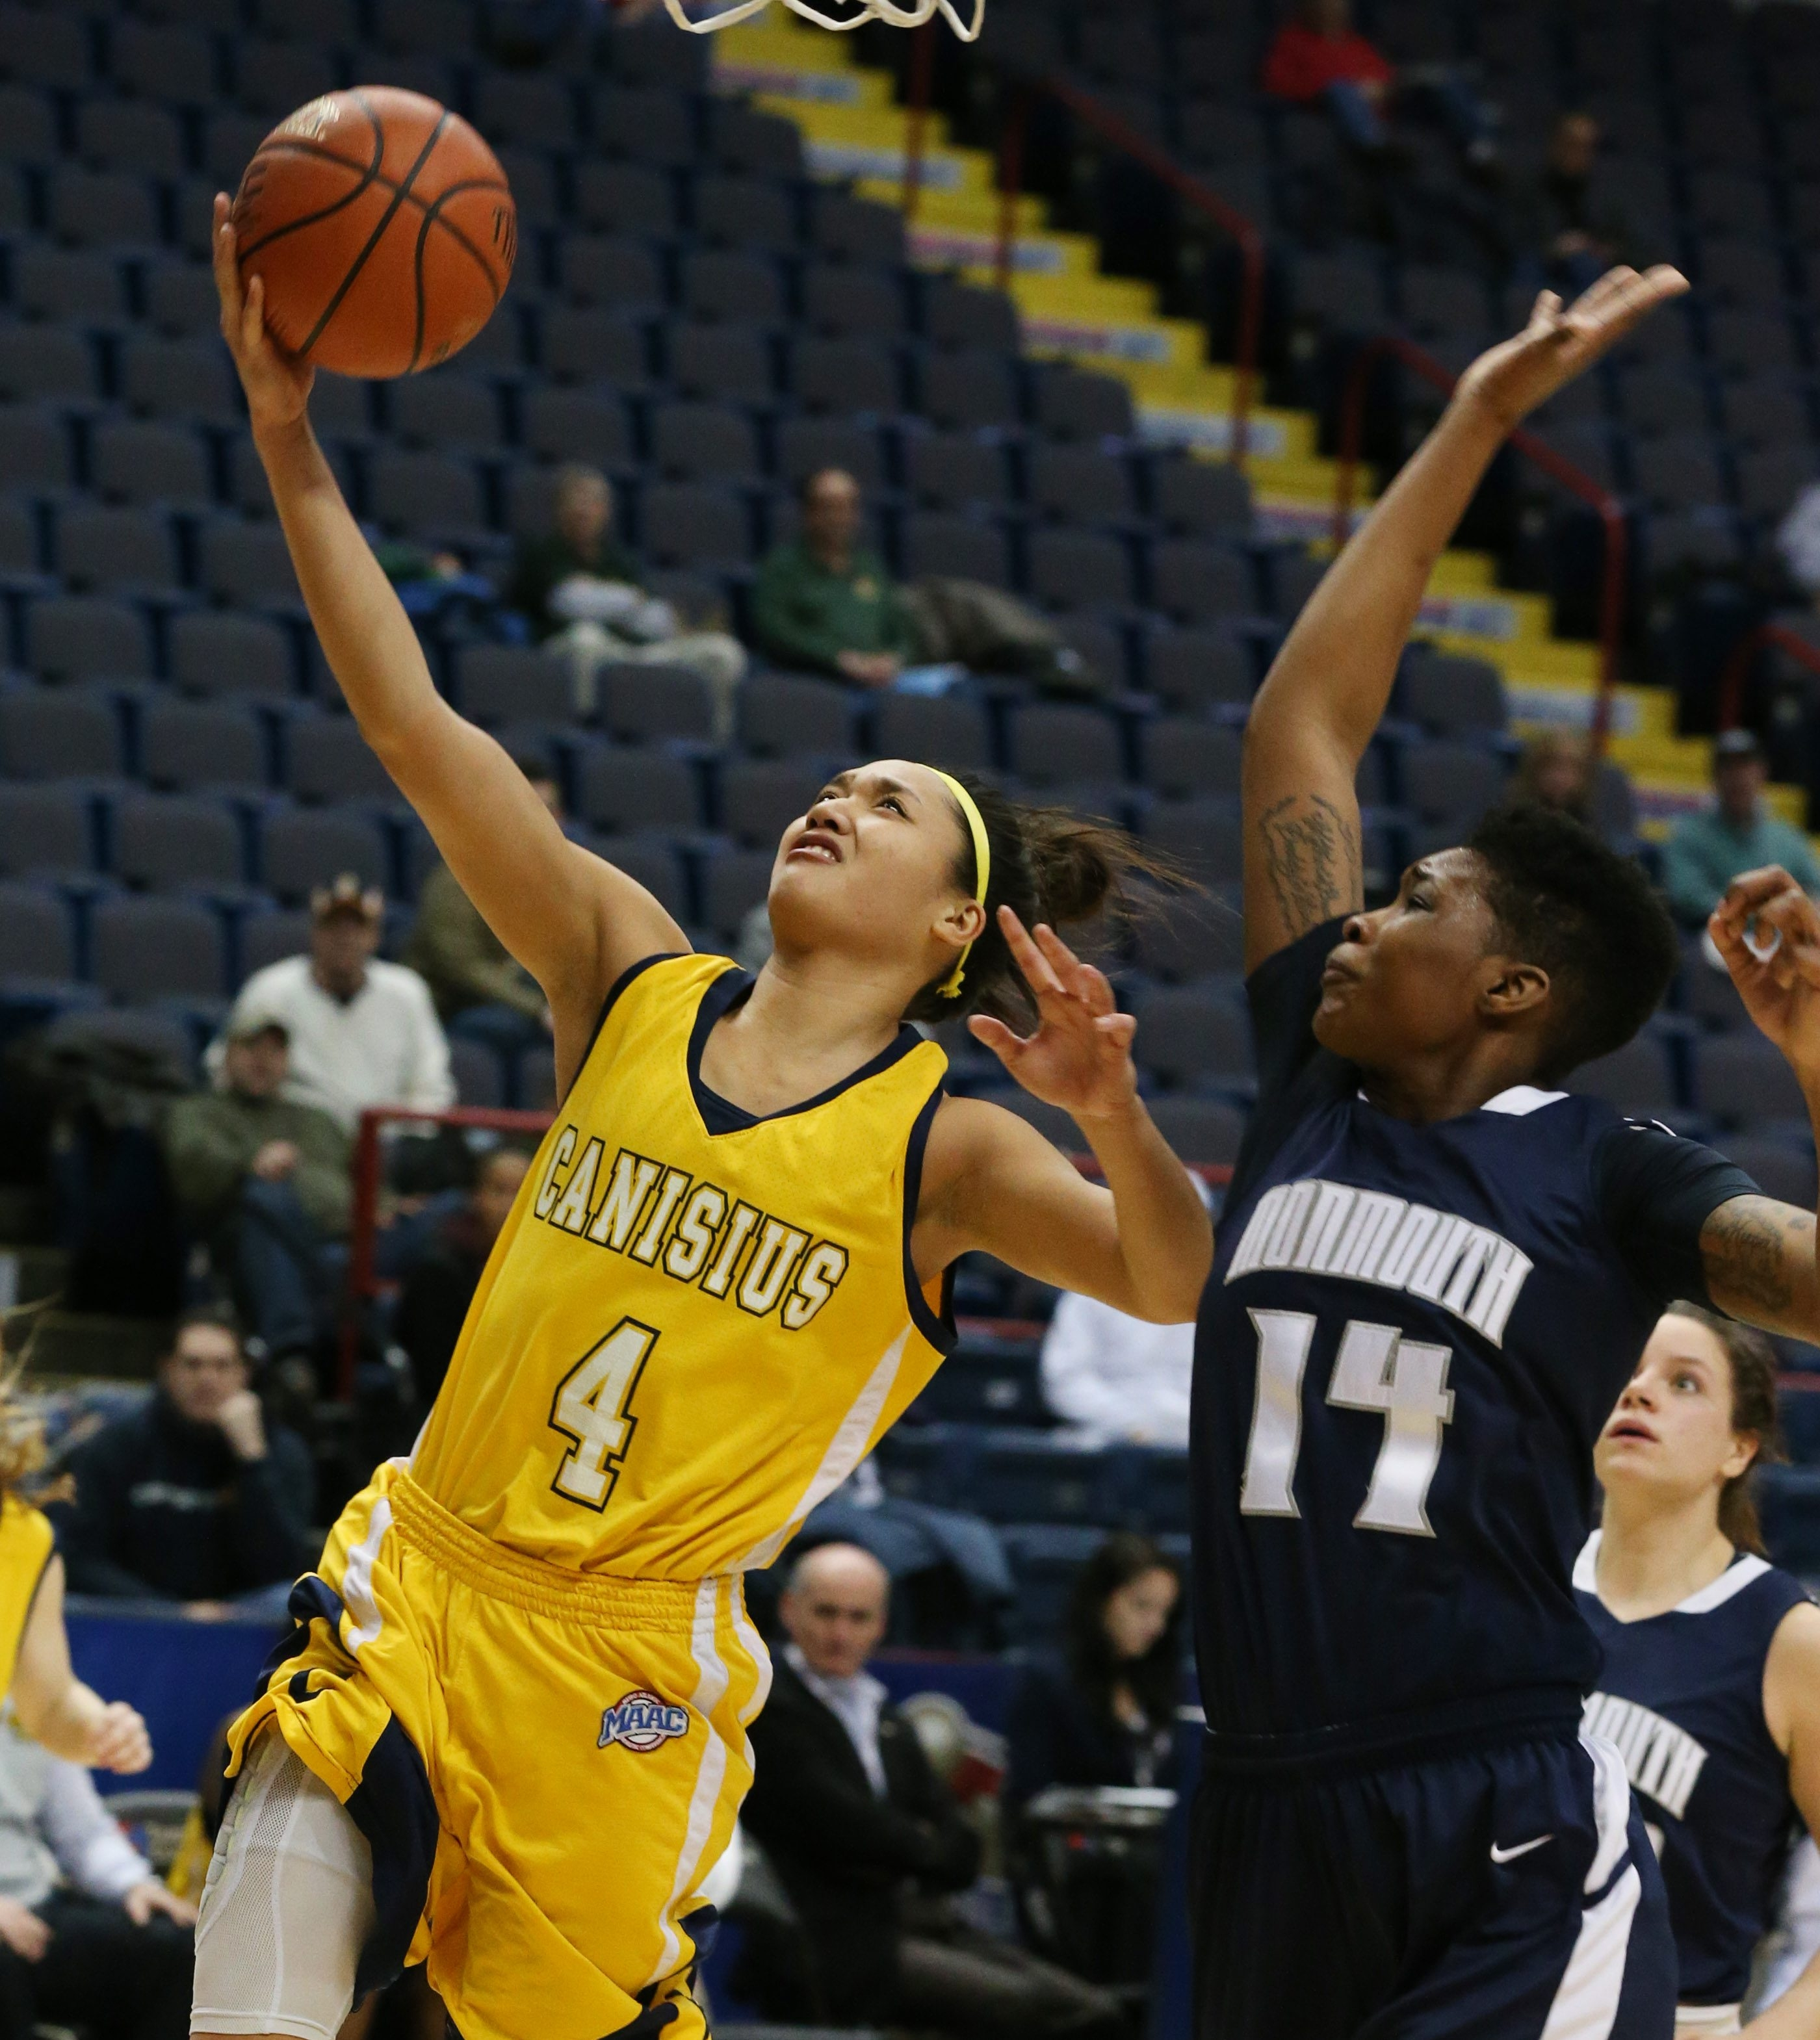 Canisius guard Kayla Hoohuli goes up for a basket against Monmouth's Christina Mitchell in the second half.